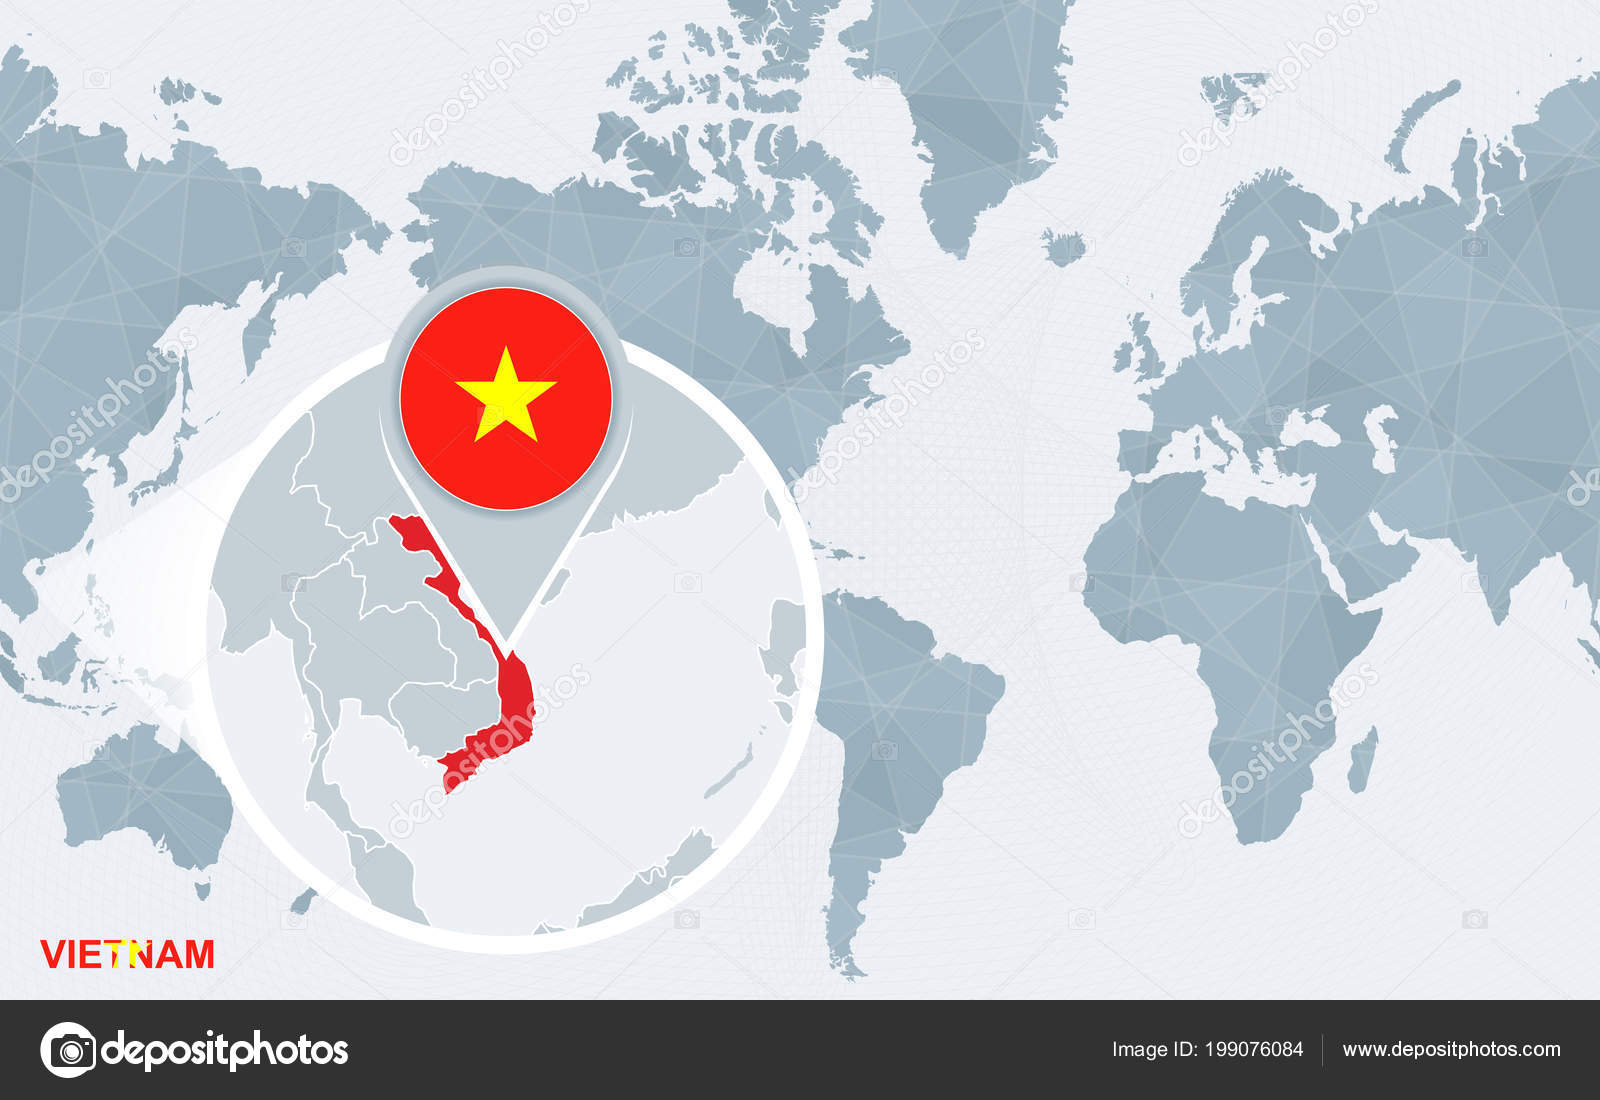 World Map Centered America Magnified Vietnam Blue Flag Map Vietnam